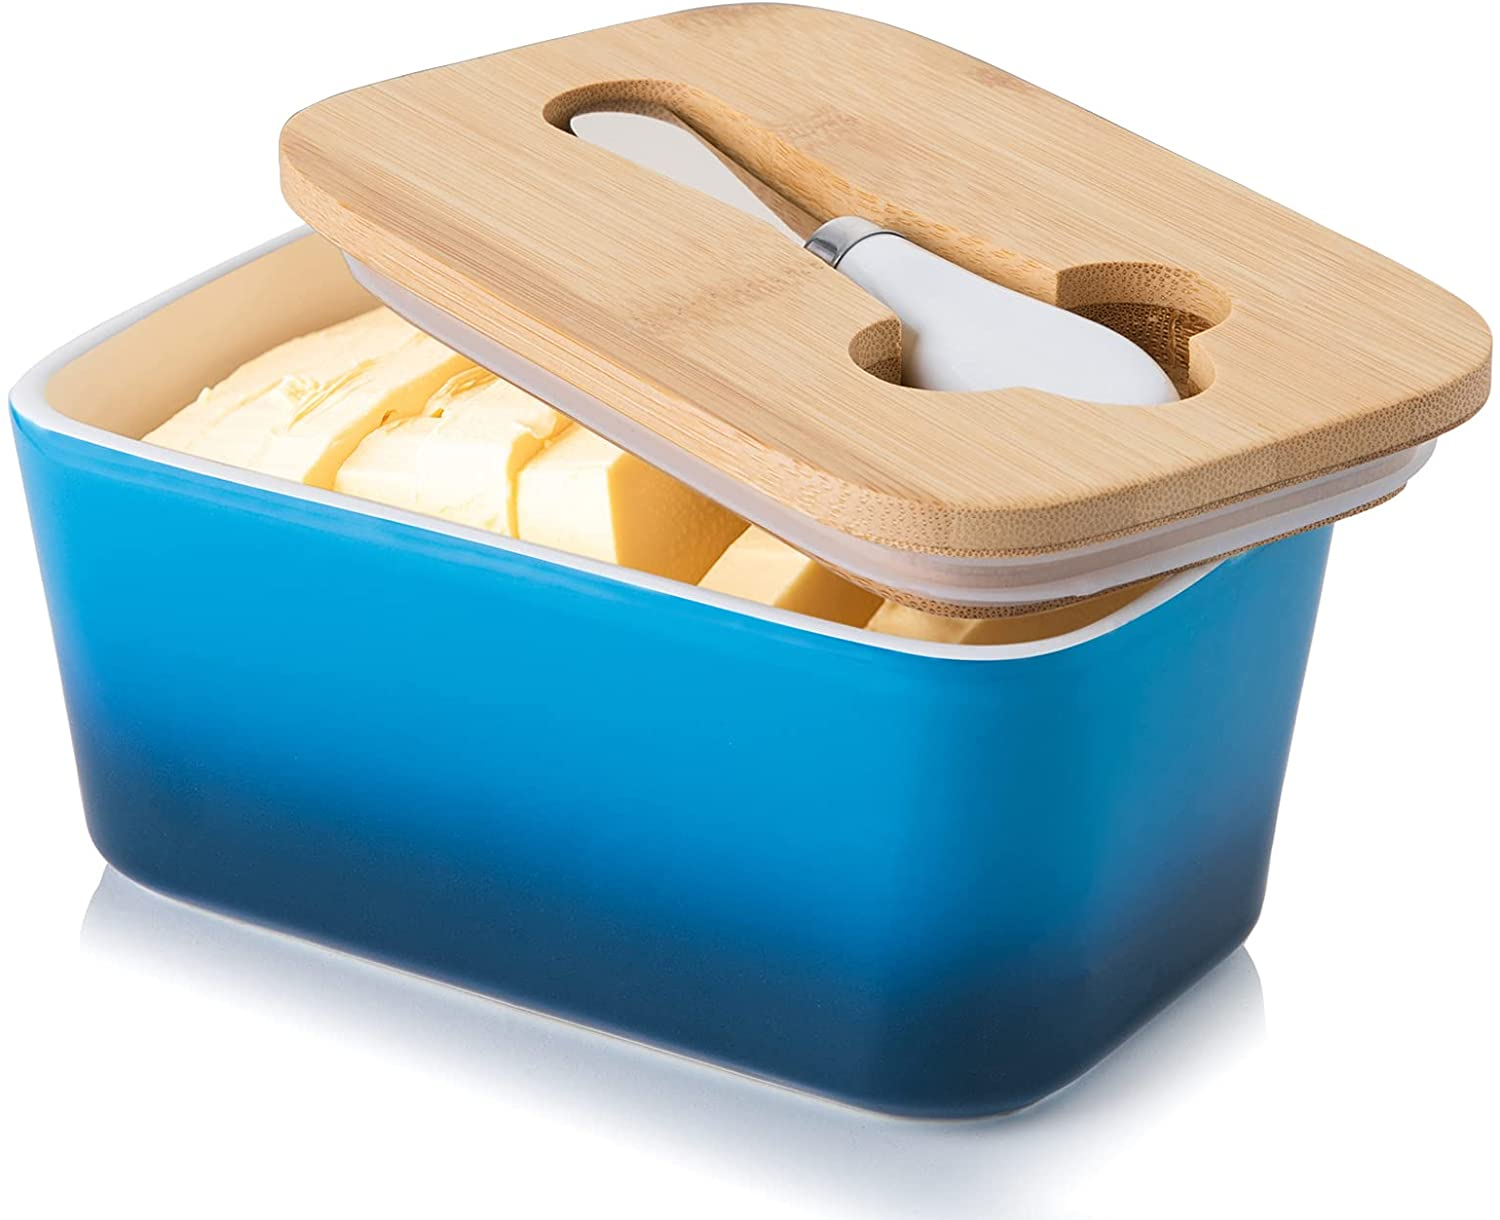 cooking-gifts-butter-keeper